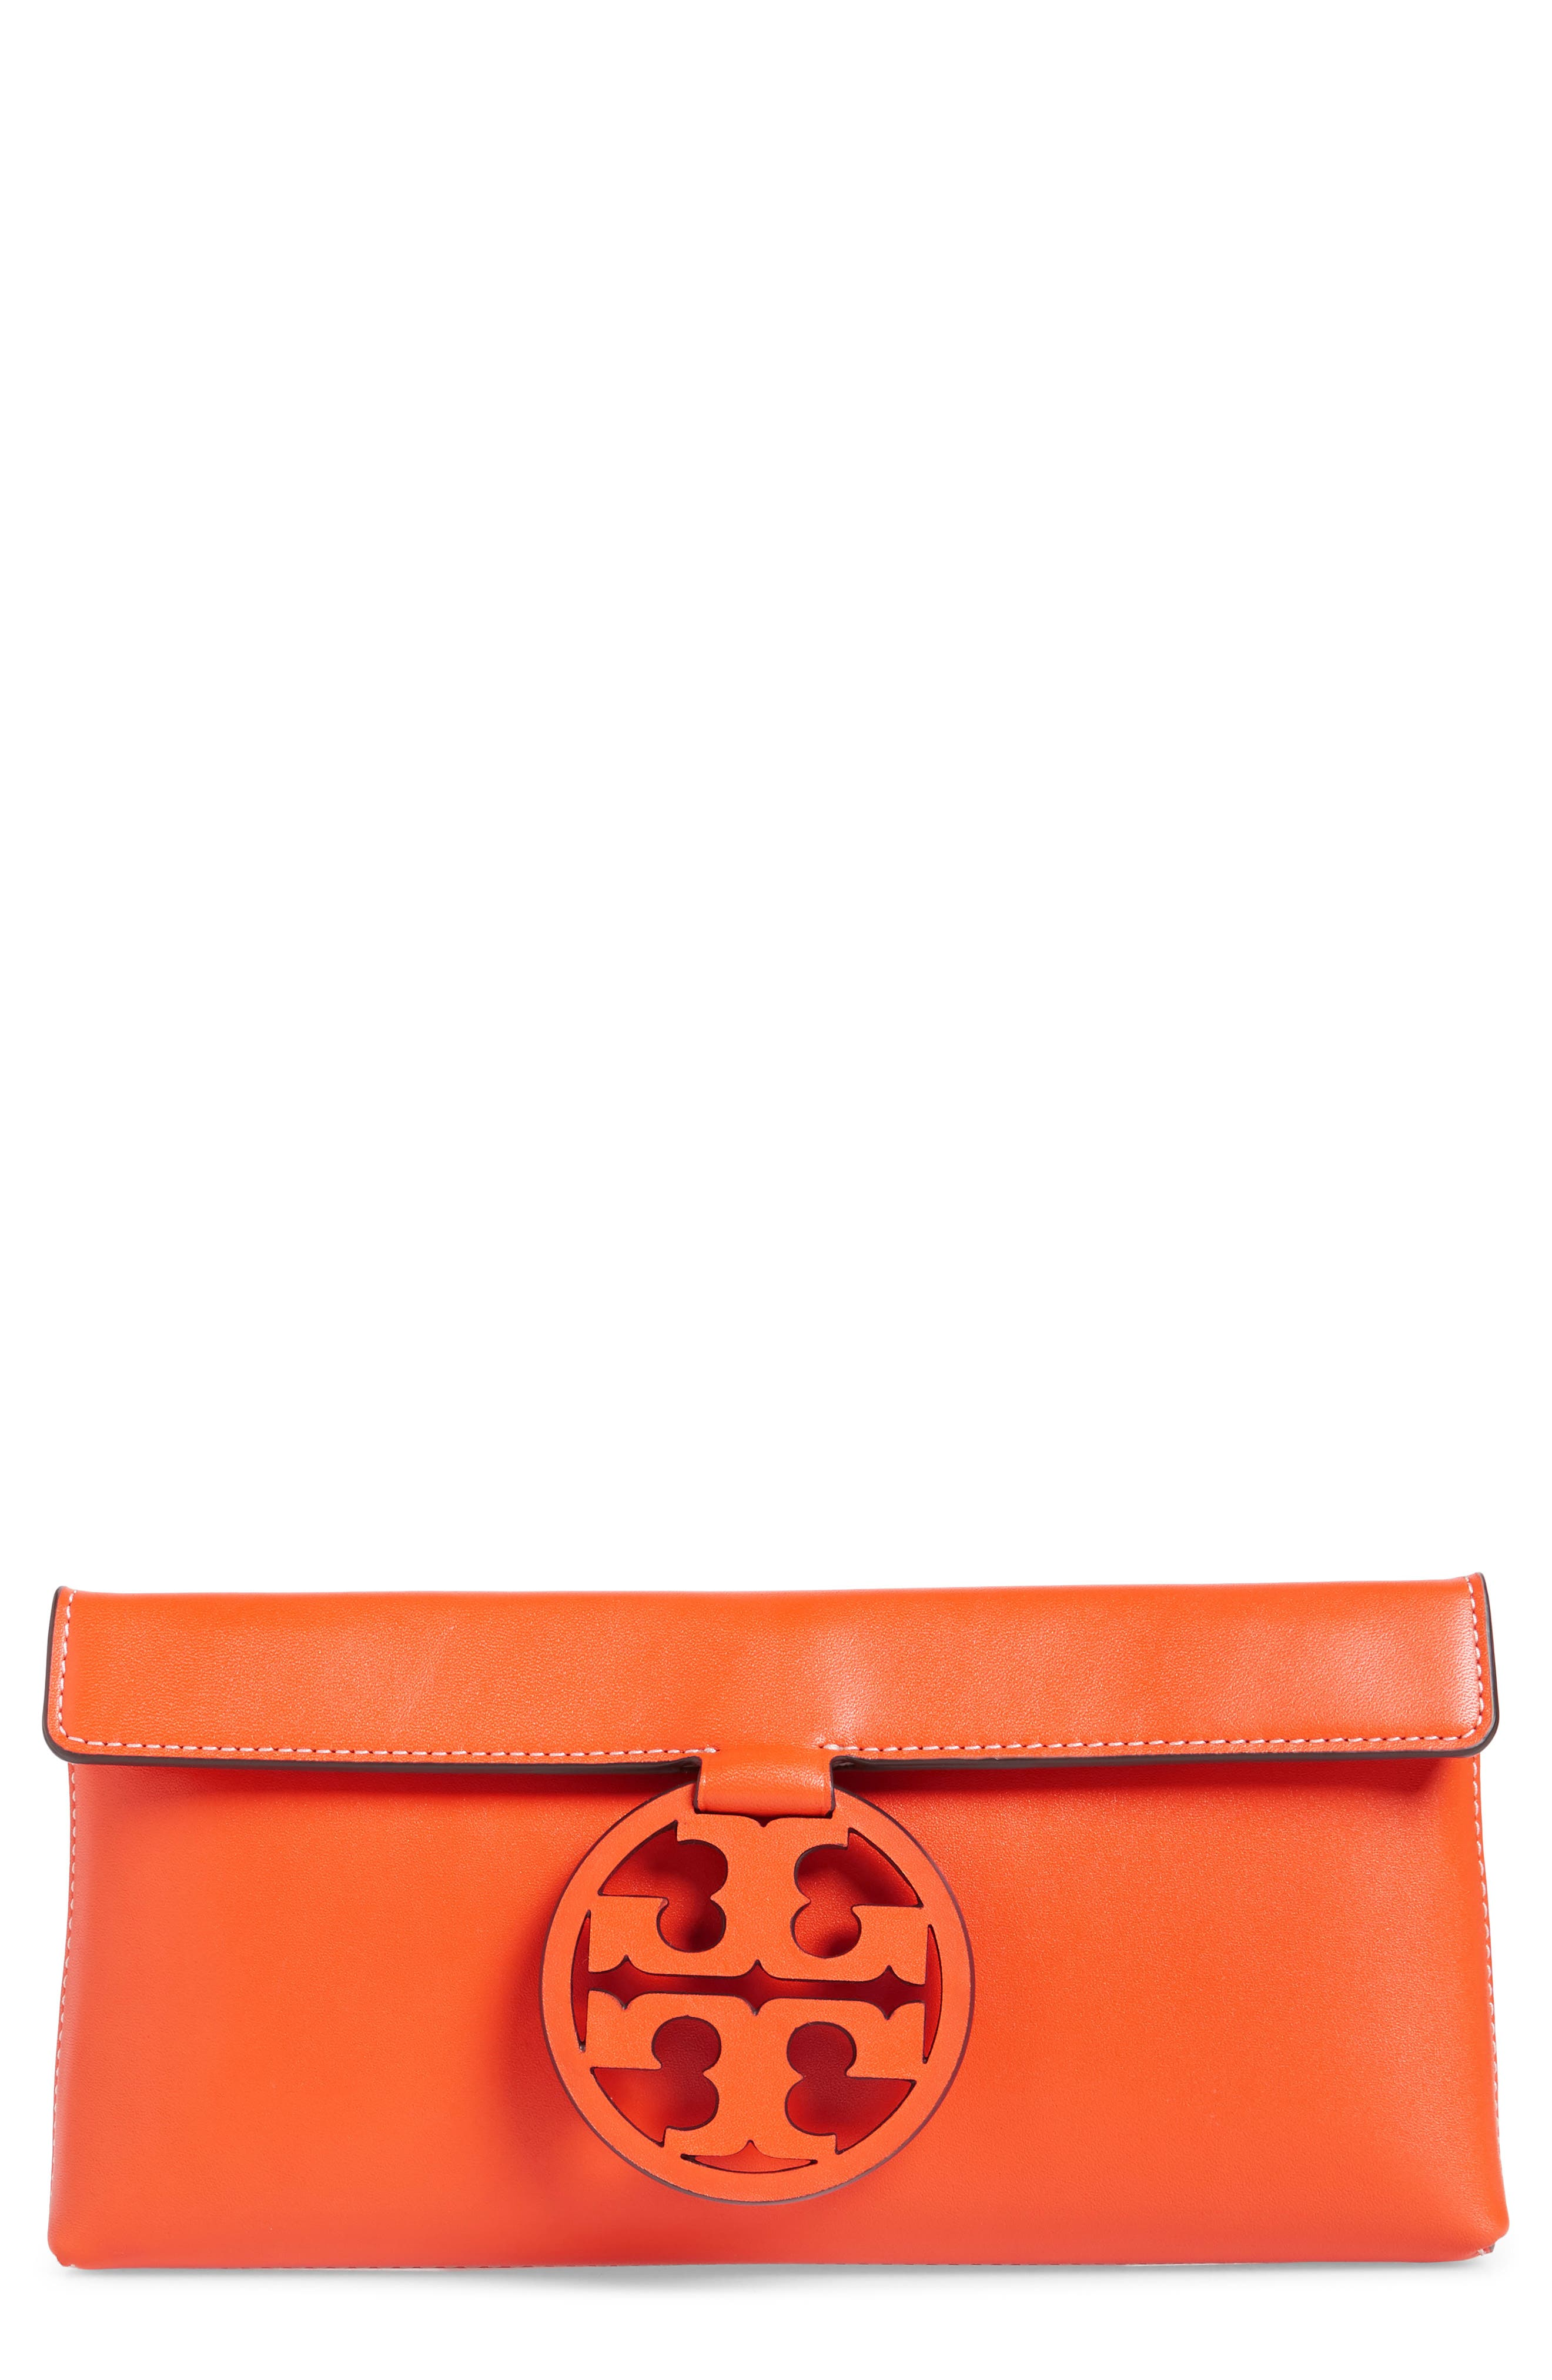 Tory Burch Miller Leather Clutch